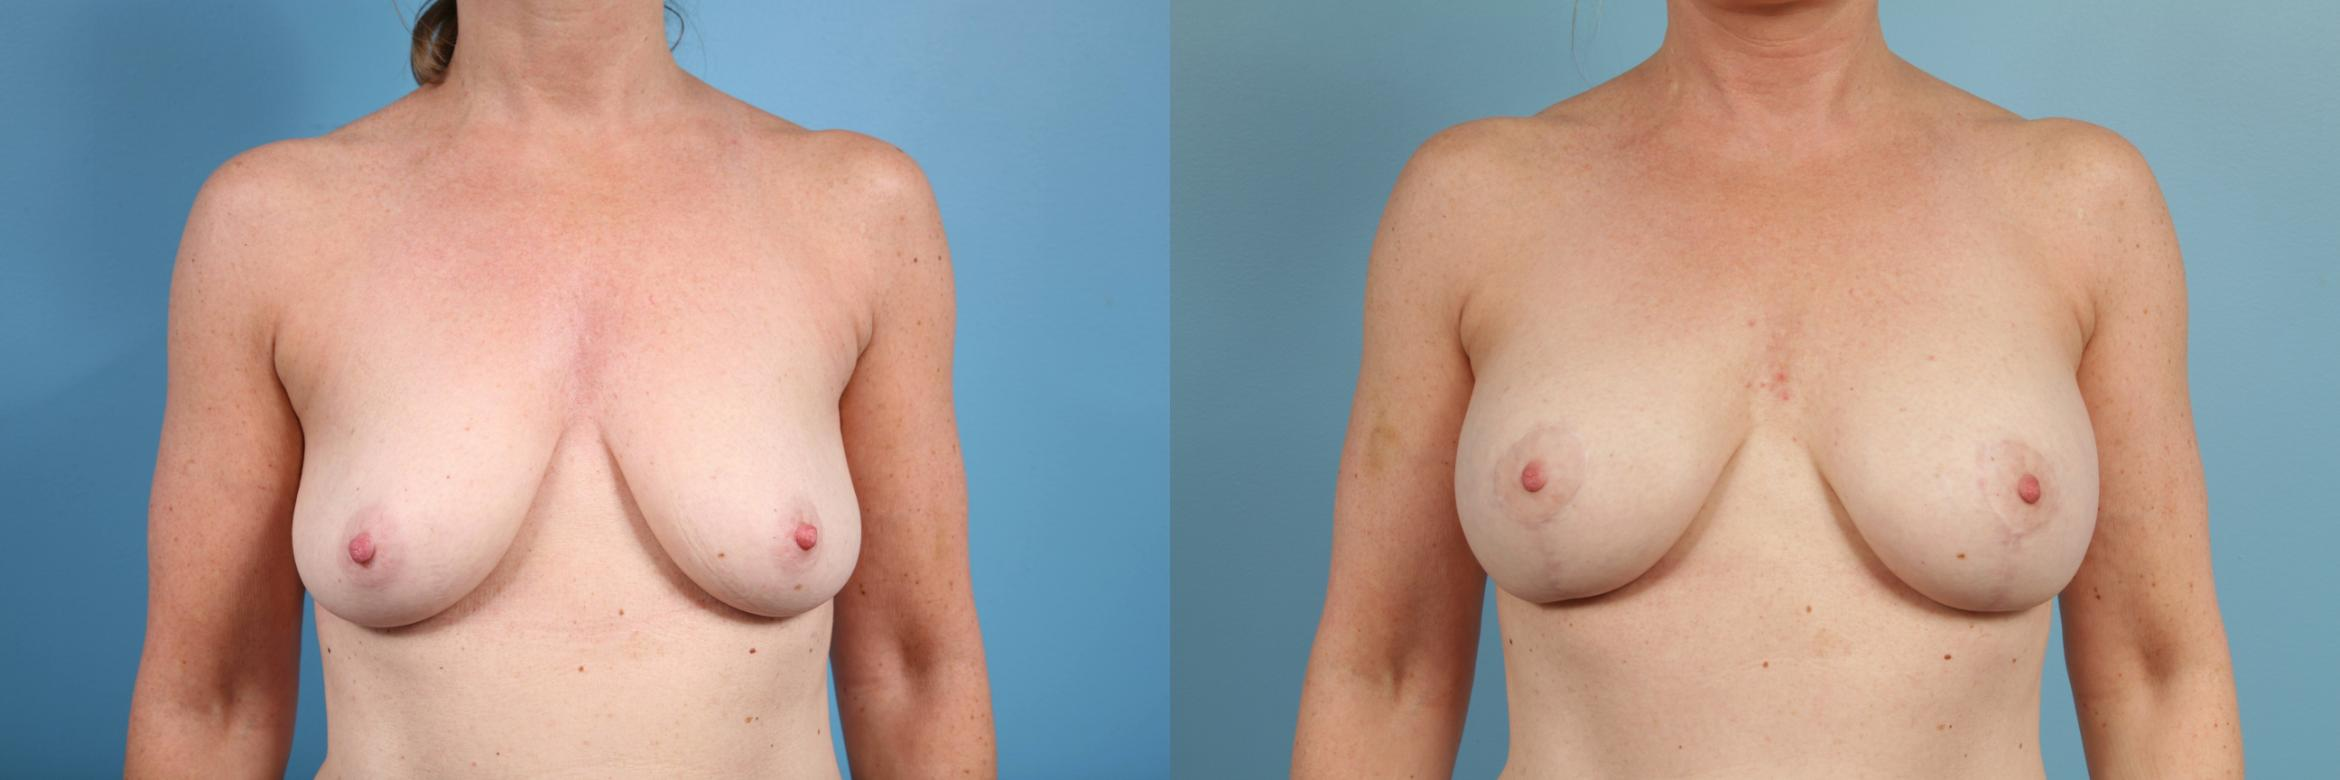 Breast Reduction Case 101 Before & After View #1 | Chicago, IL | TLKM Plastic Surgery